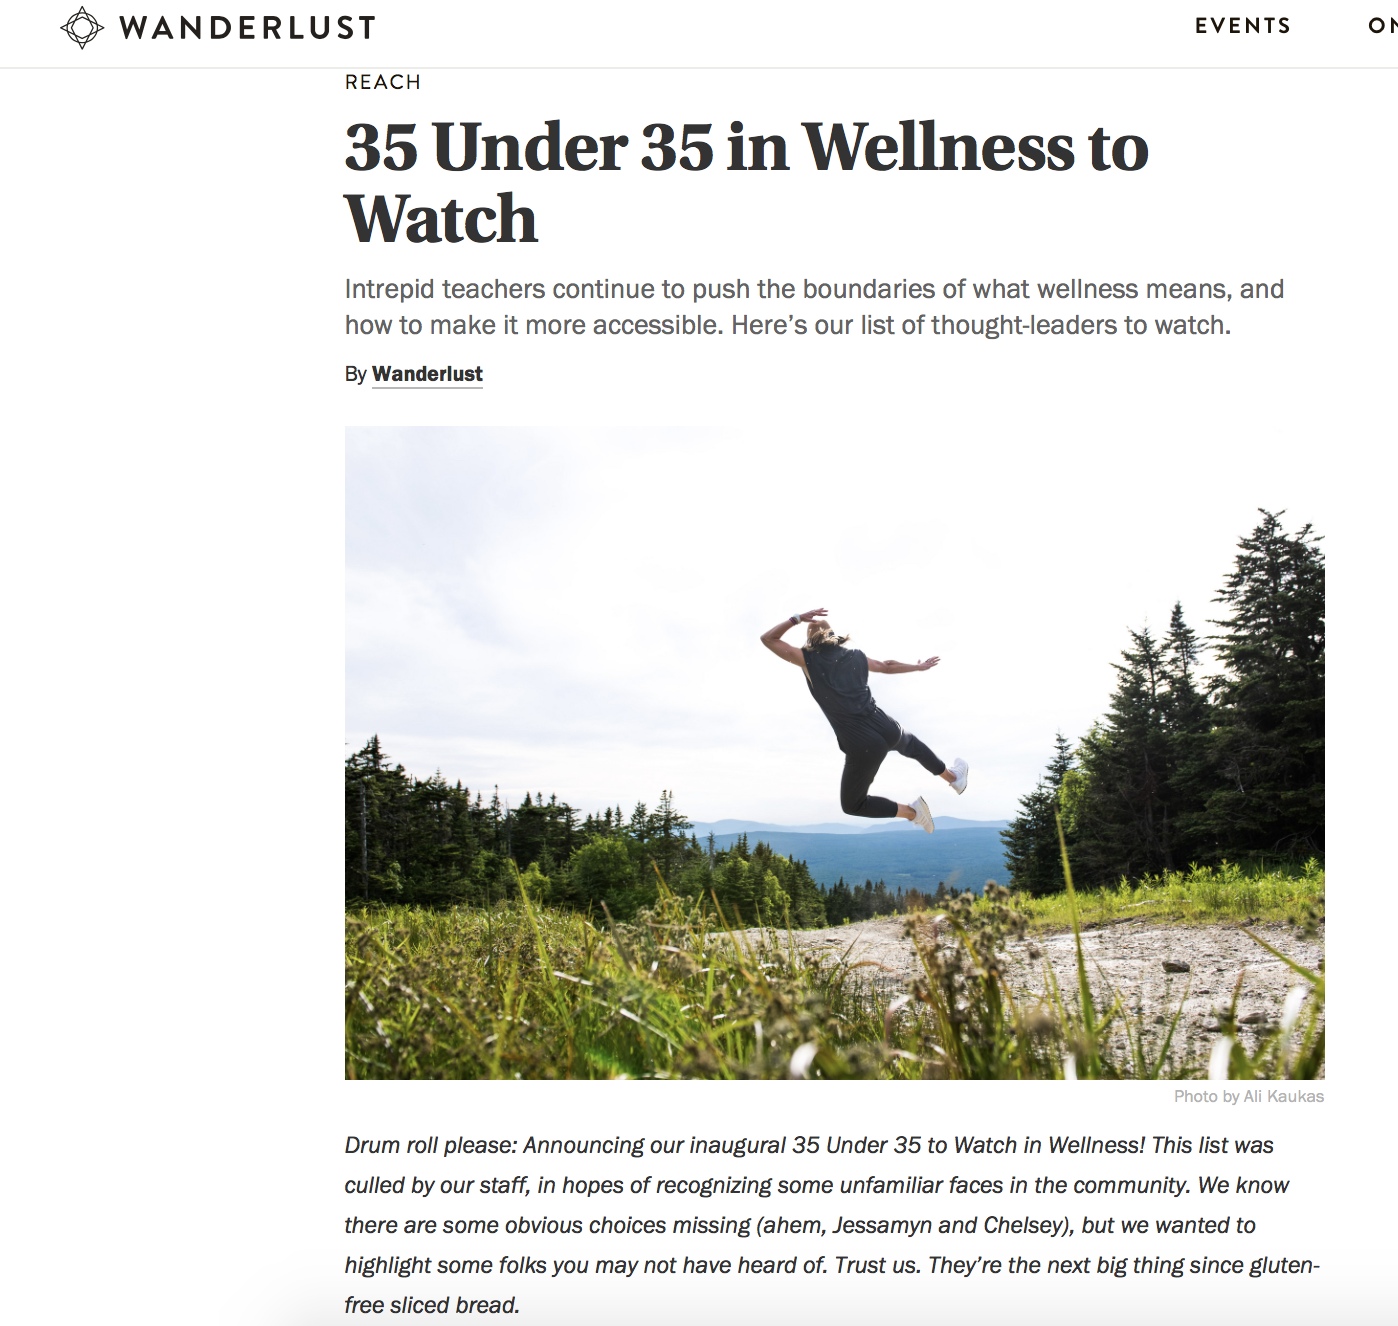 """Wanderlust's annual """"35 Under 35 in Wellness to Watch,"""" available  here."""